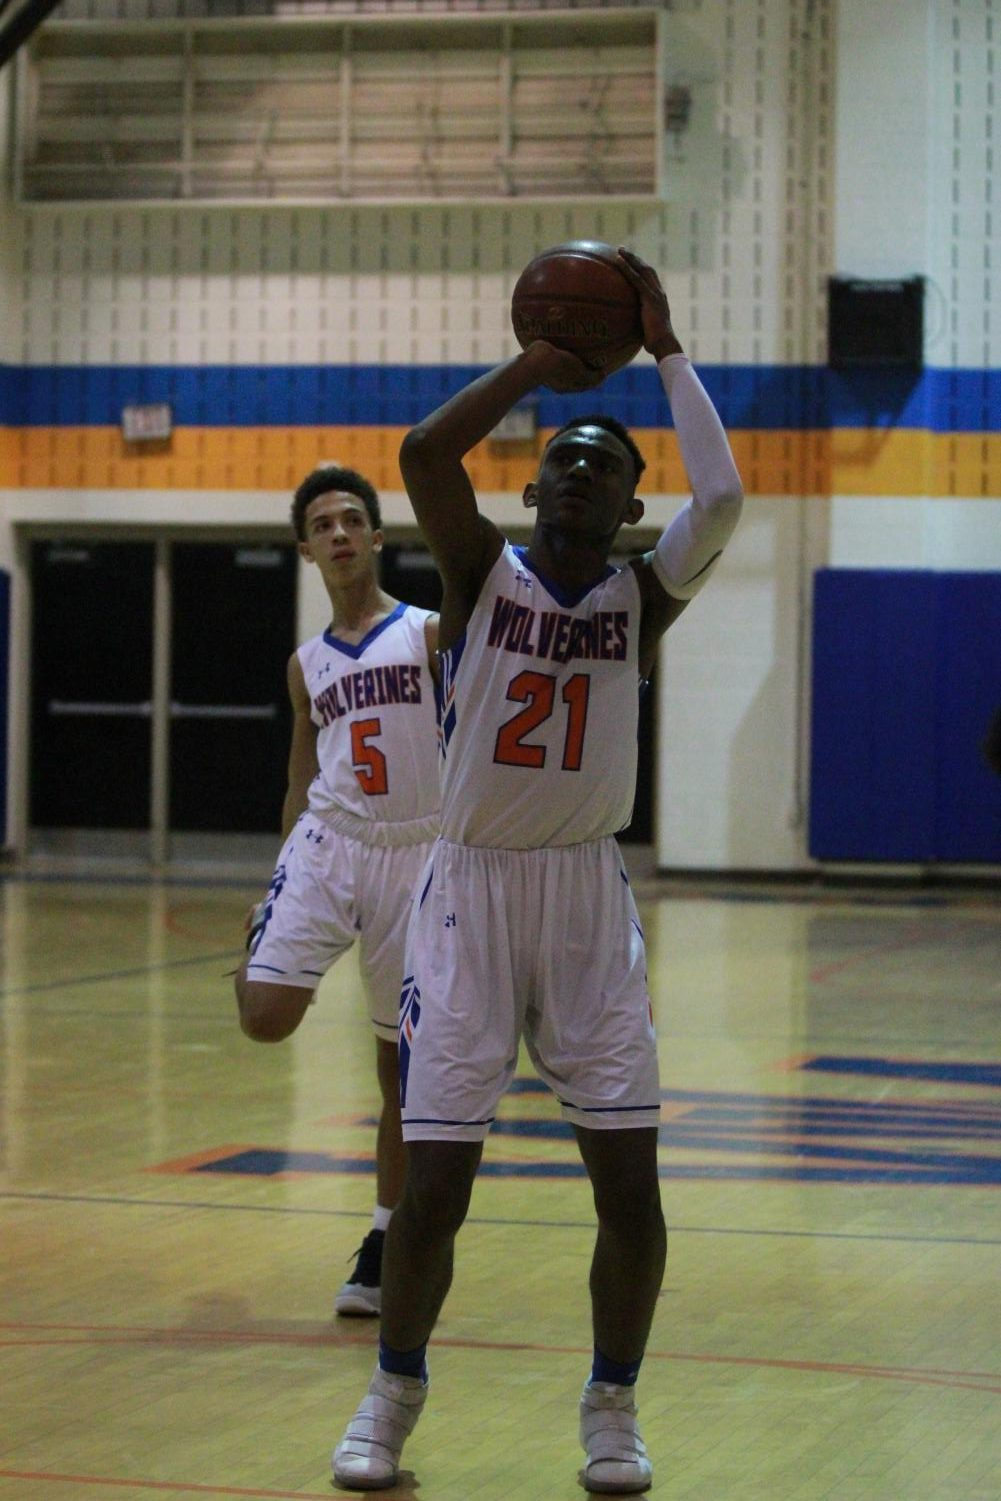 Senior Manesse Boito gets ready to take a shot during the season opener.